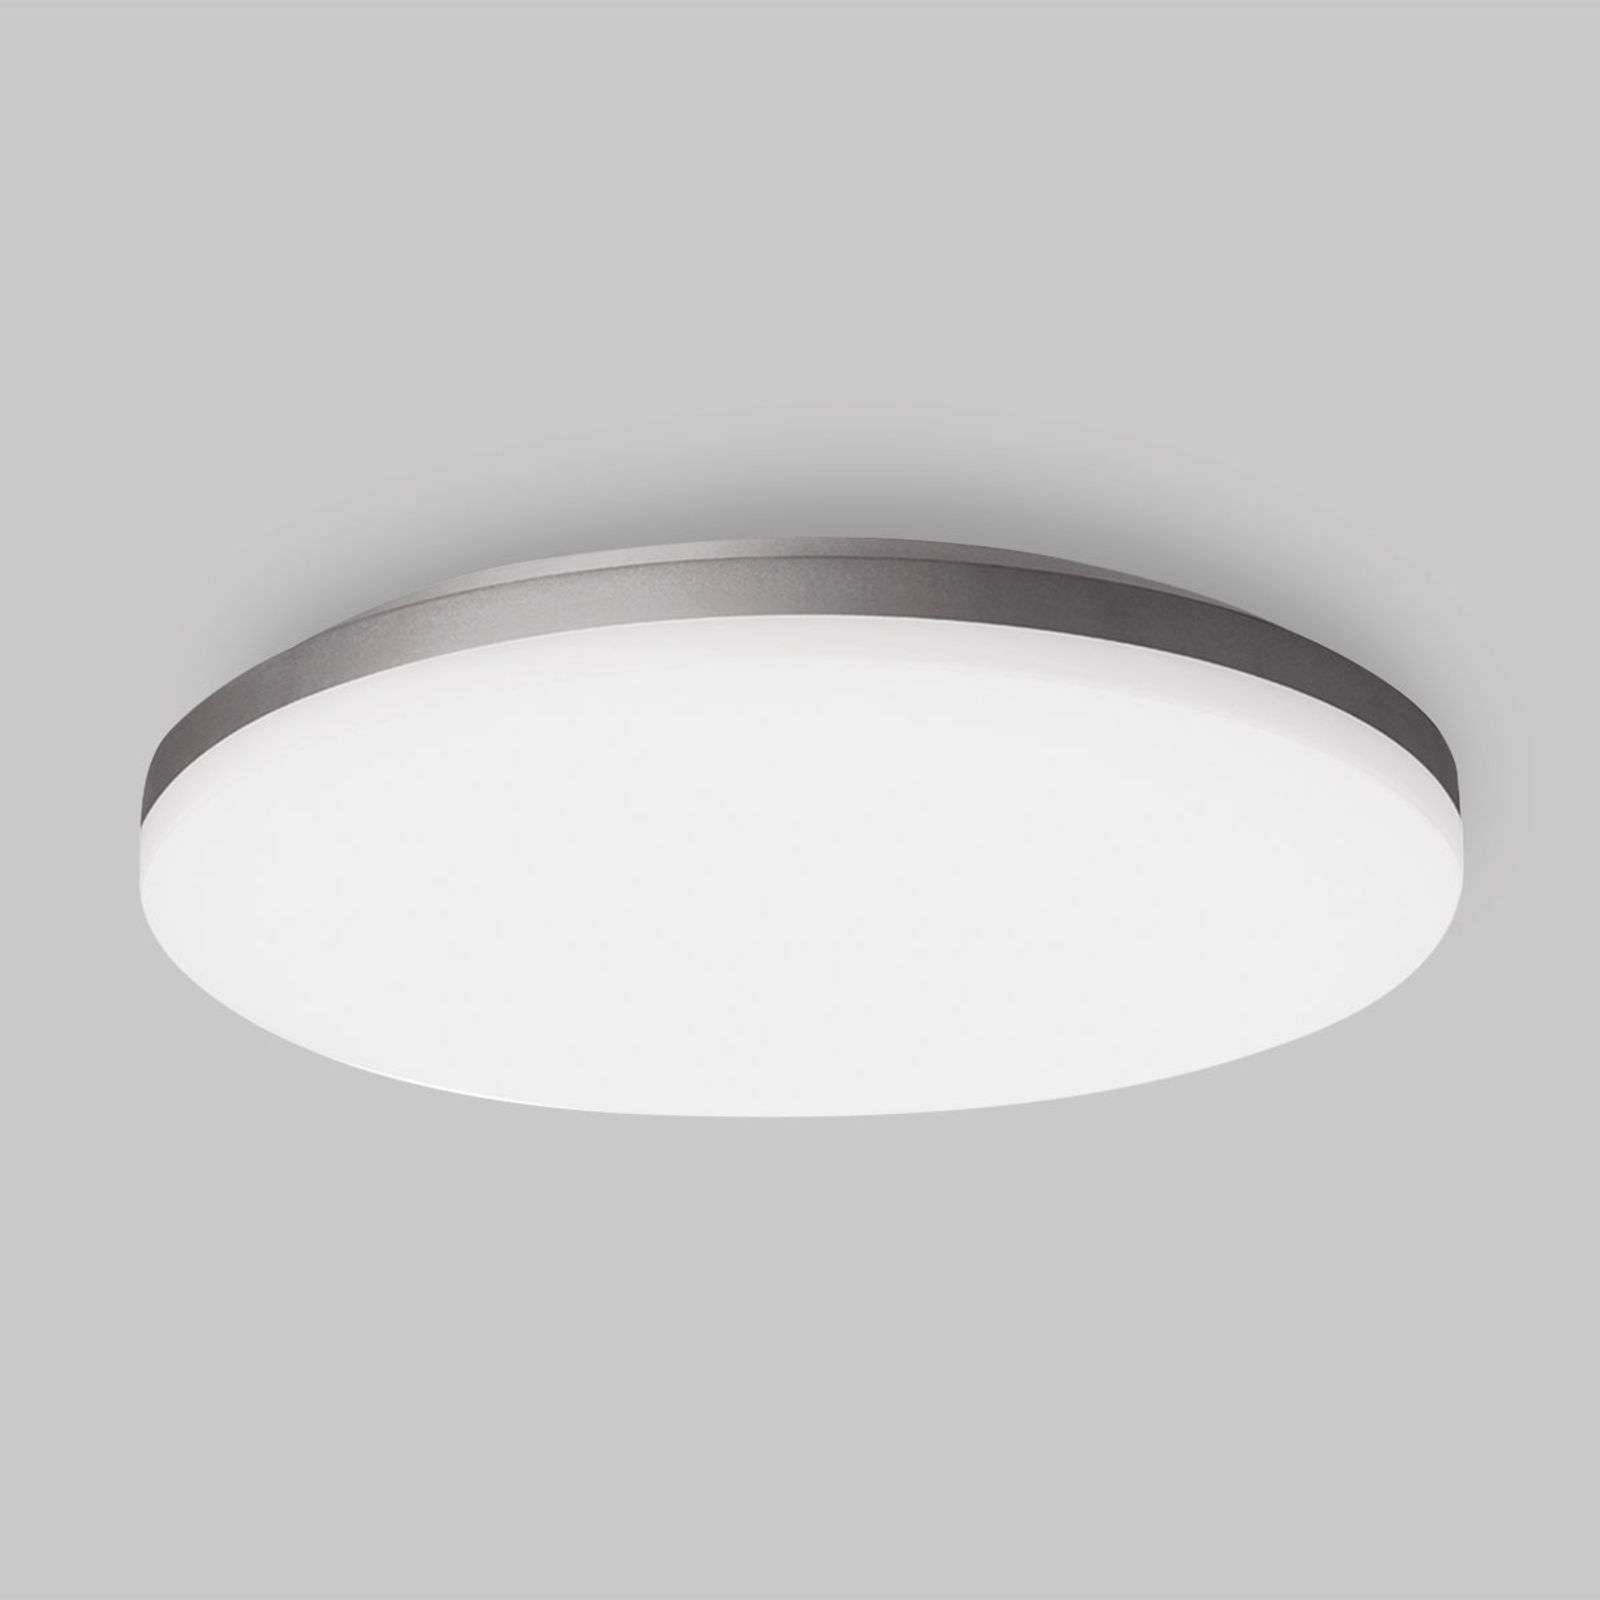 Applique WL270 LED opale 2x55° 4 000 K